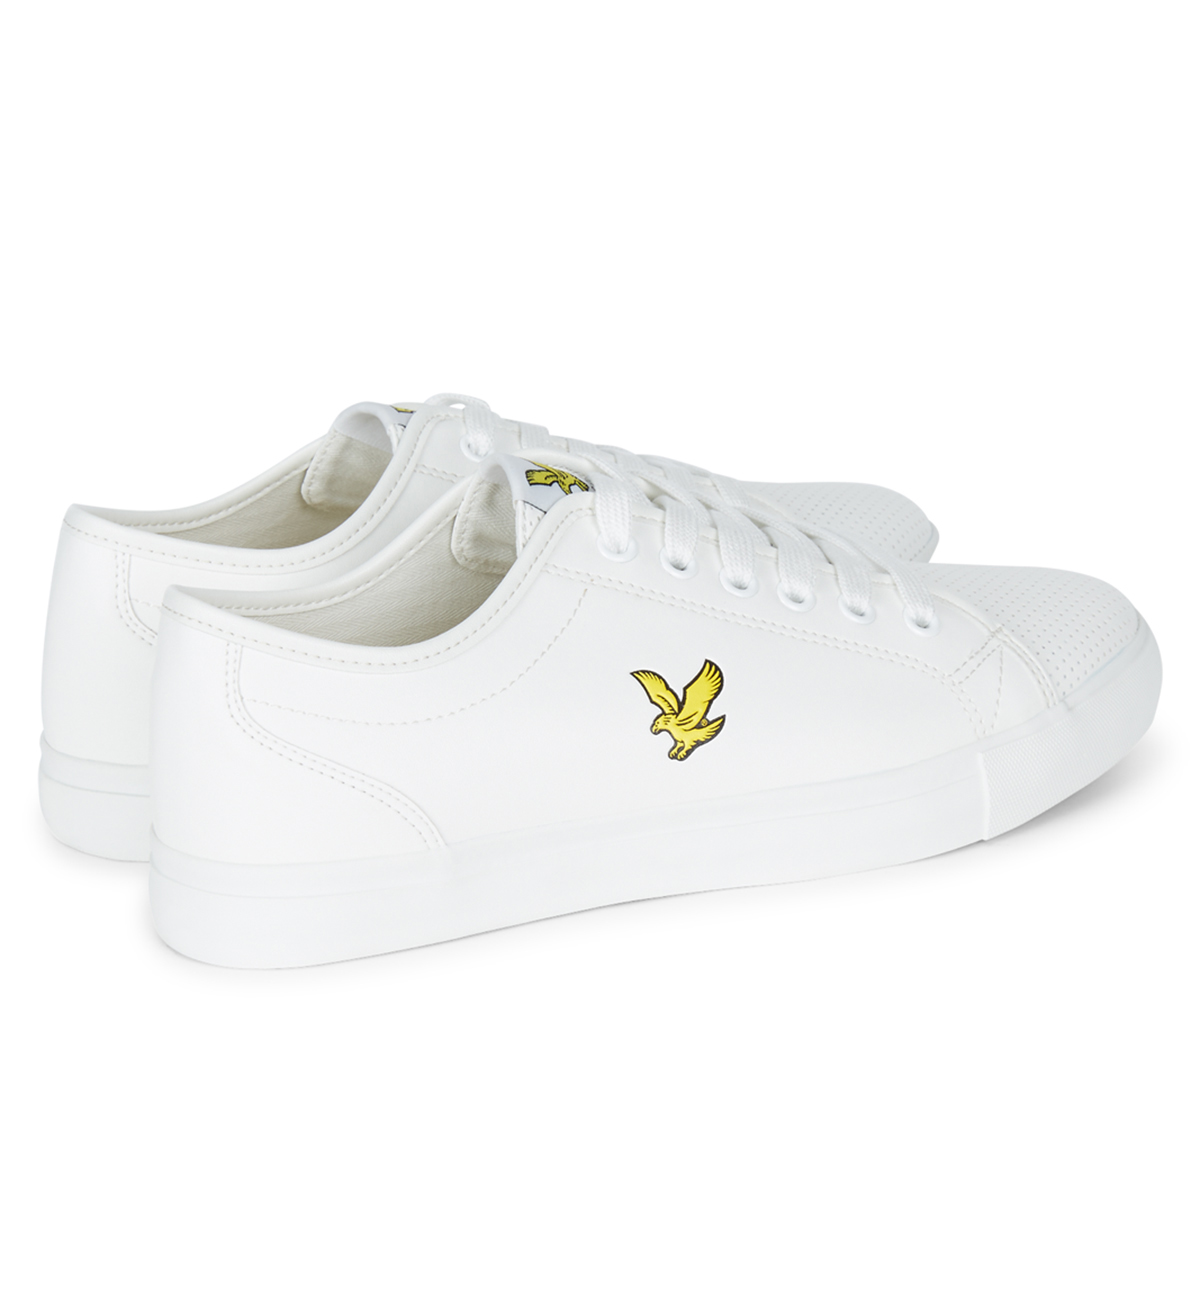 Lyle /& Scott Whitlock Perforated Fashion Synthetic Plimsolls Shoes Trainer White